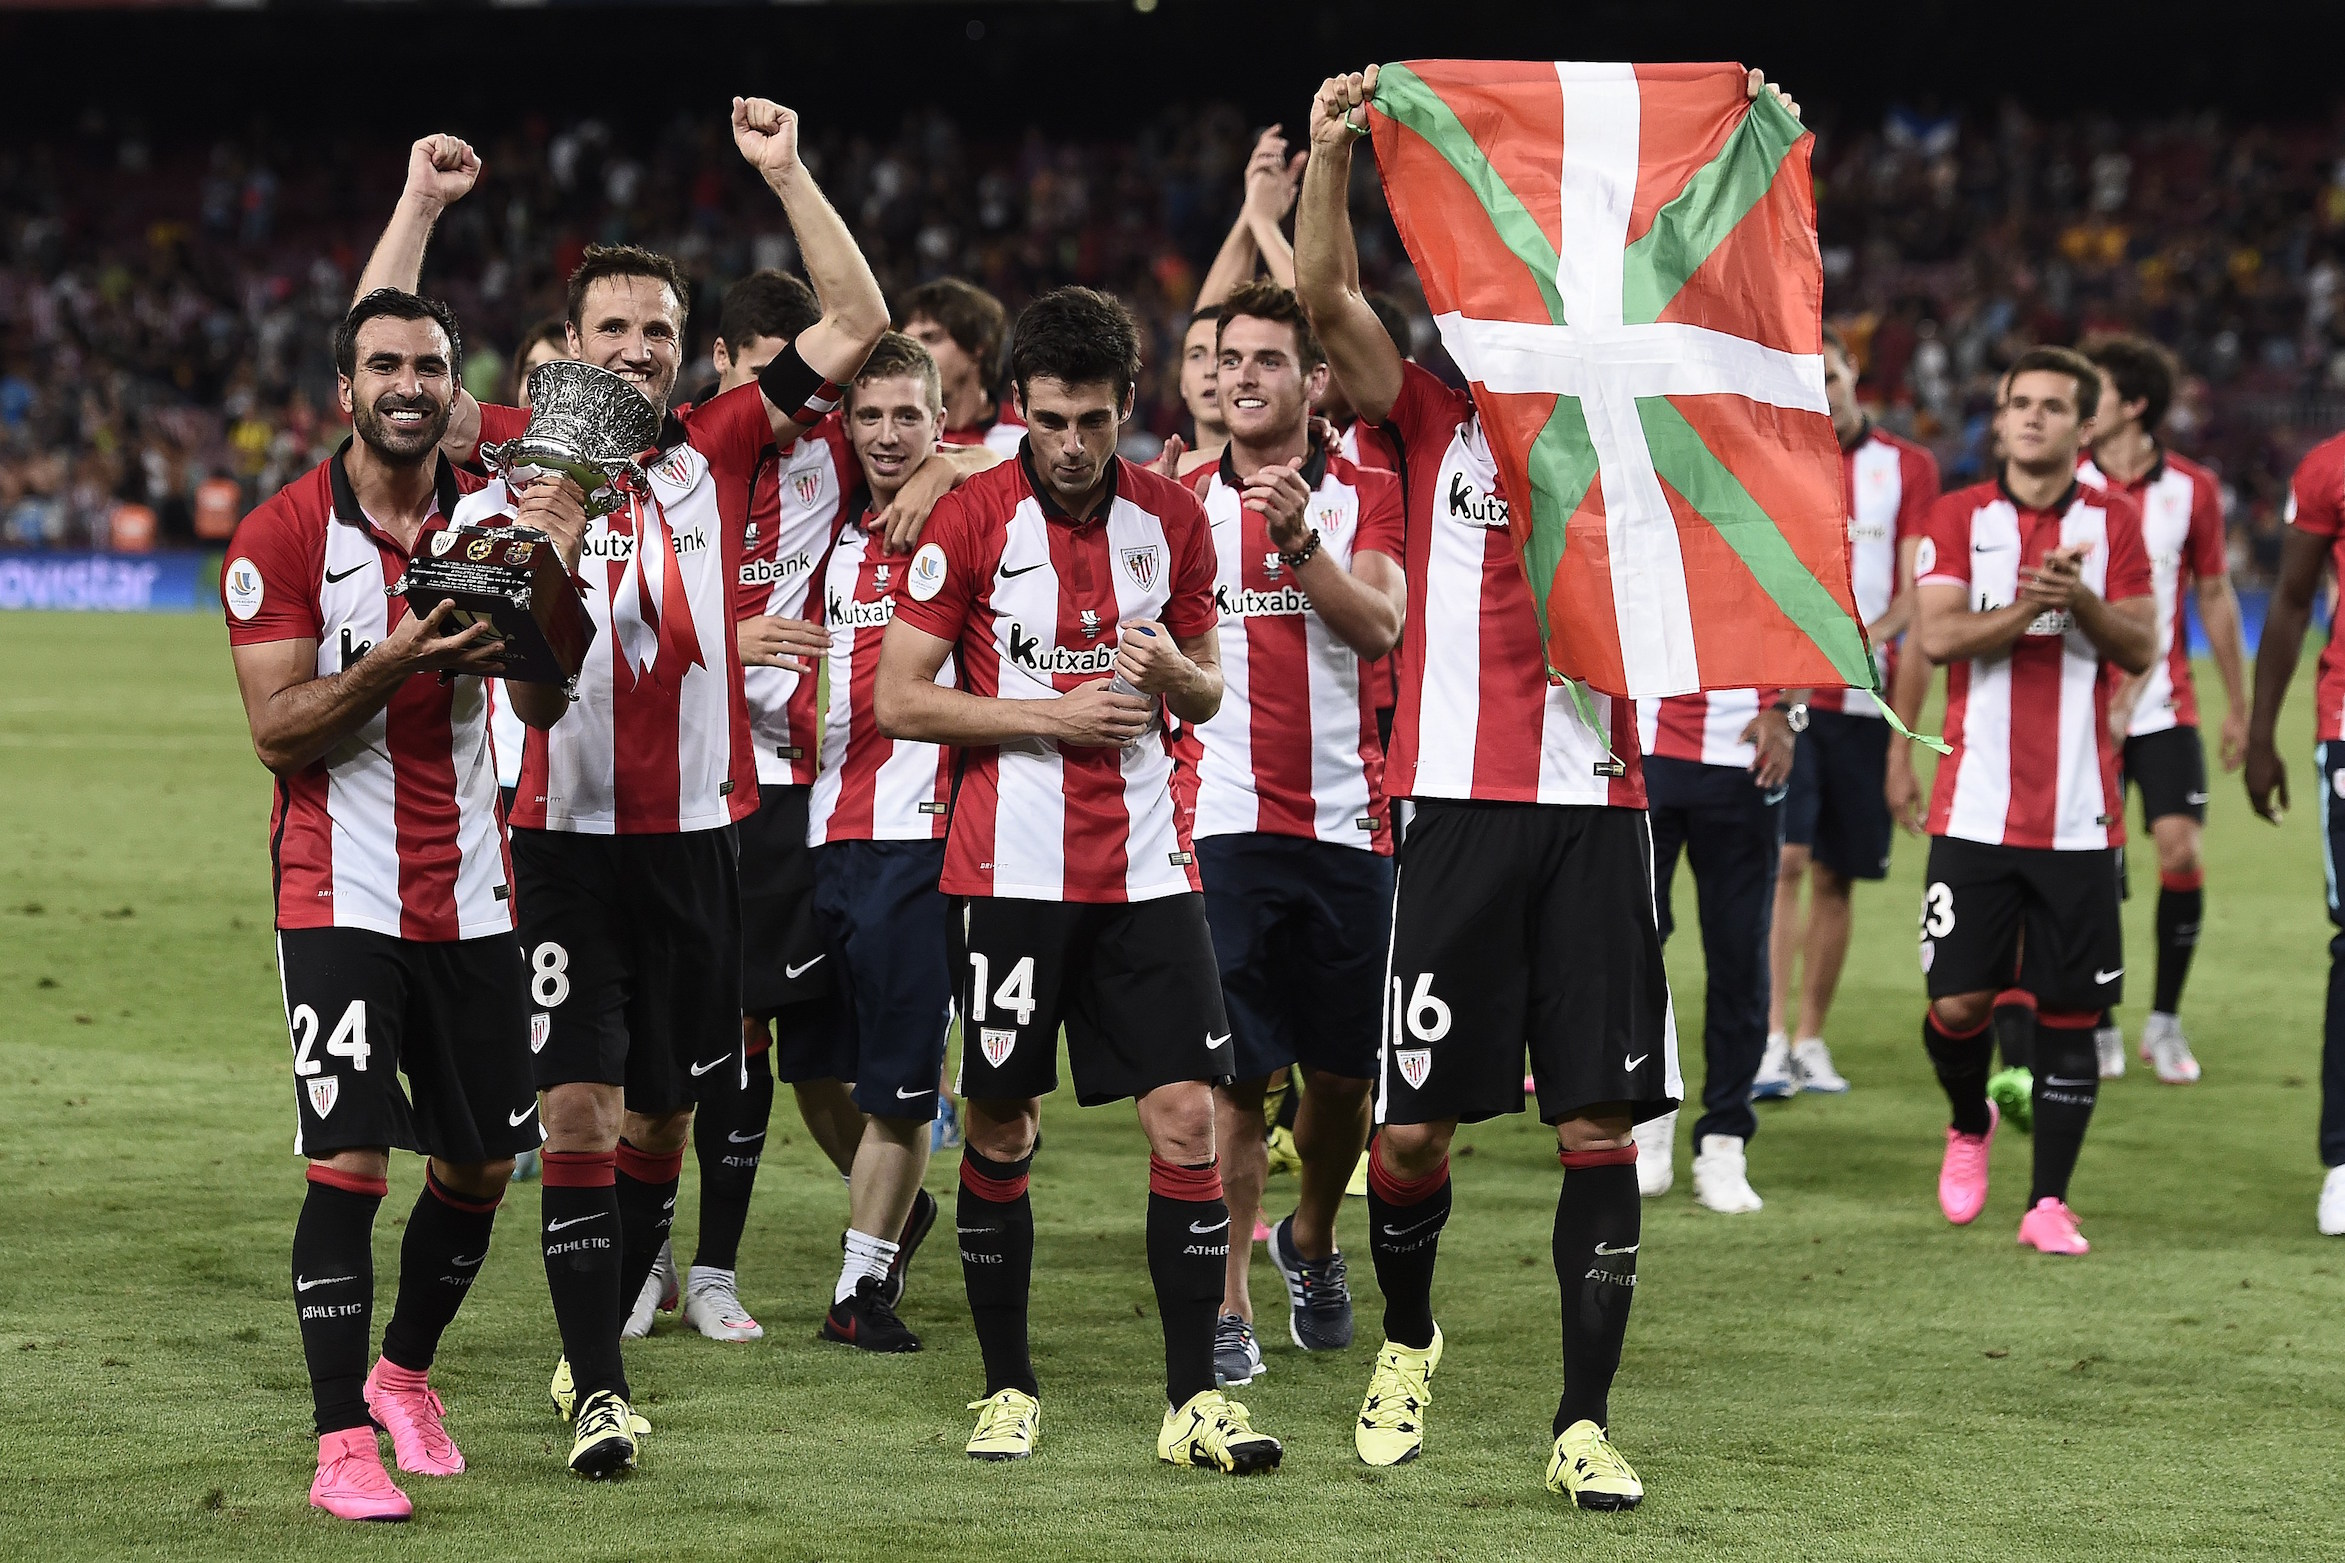 Athletic Bilbao's players wave an ikurrina (Basque flag) and hold their trophy as they celebrate after winning the the Spanish Supercup match during the Spanish Supercup second-leg football match FC Barcelona vs Athletic club Bilbao at the Camp Nou stadium in Barcelona on August 17, 2015. AFP PHOTO / JOSEP LAGO (Photo credit should read JOSEP LAGO/AFP/Getty Images)